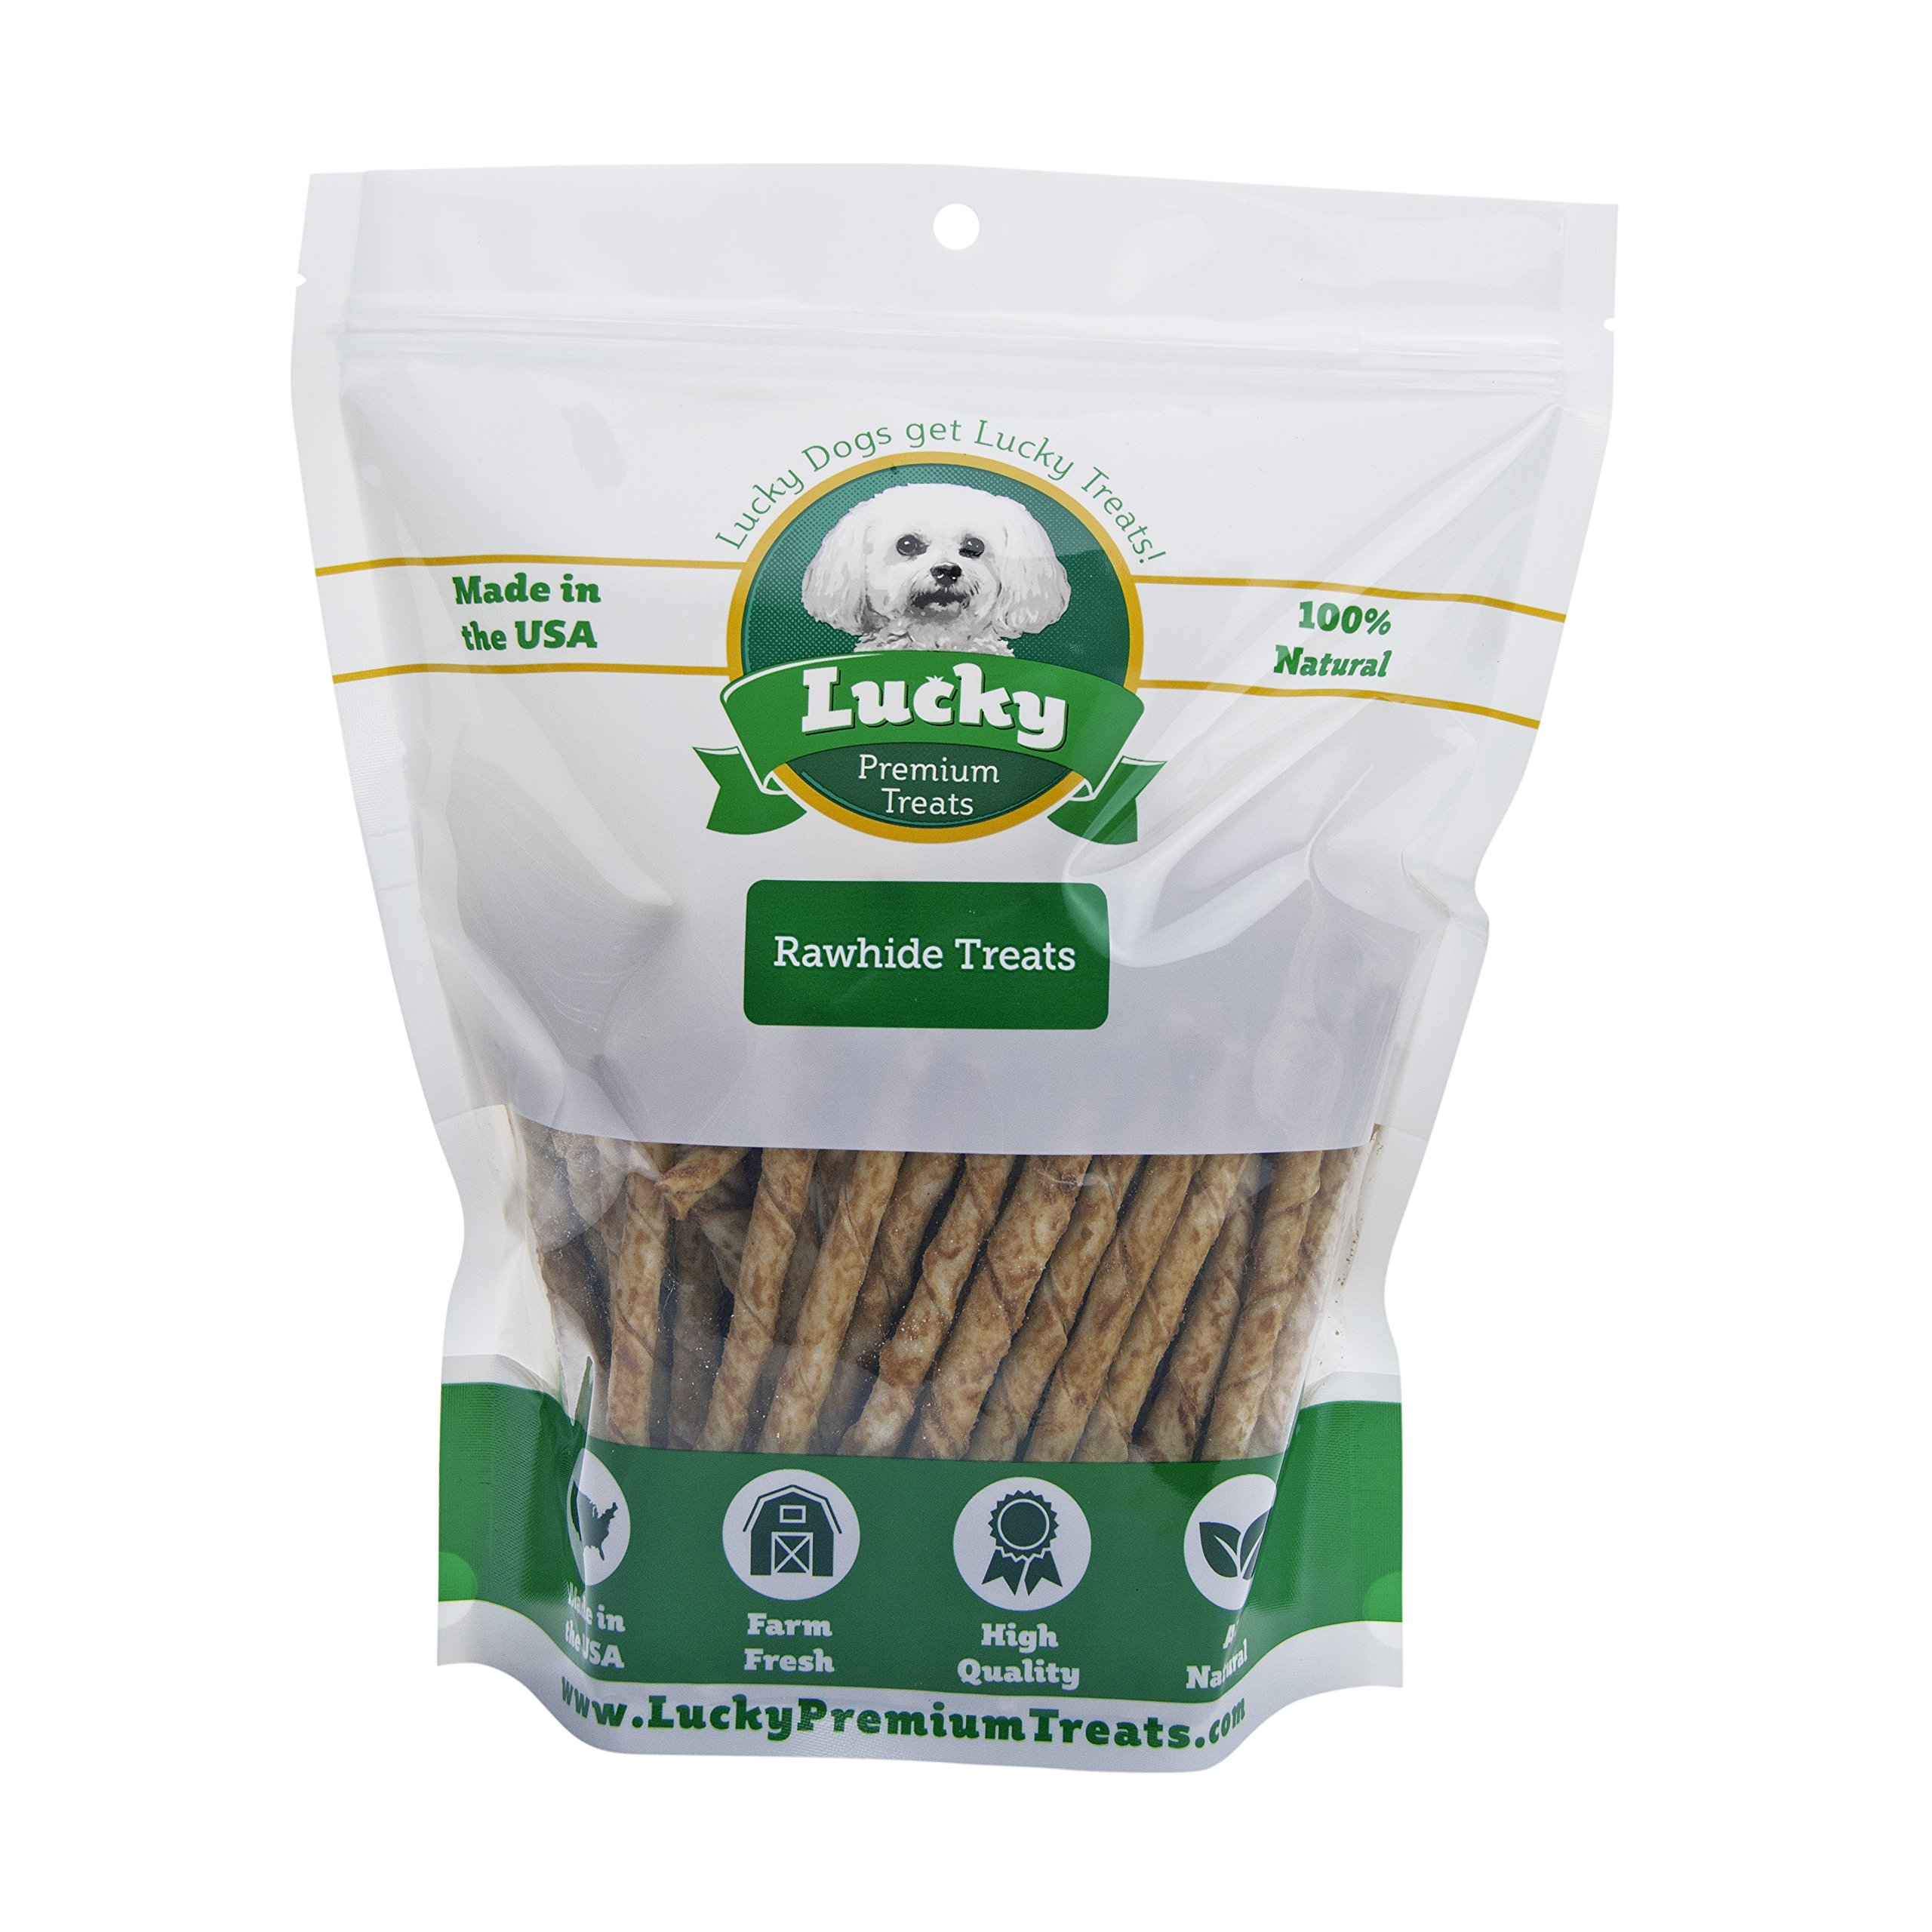 Peanut Butter Flavored Rawhide Dog Treats for Small Dogs Made in the USA Only by Lucky Premium Treats, 365 Chews by Lucky Premium Treats